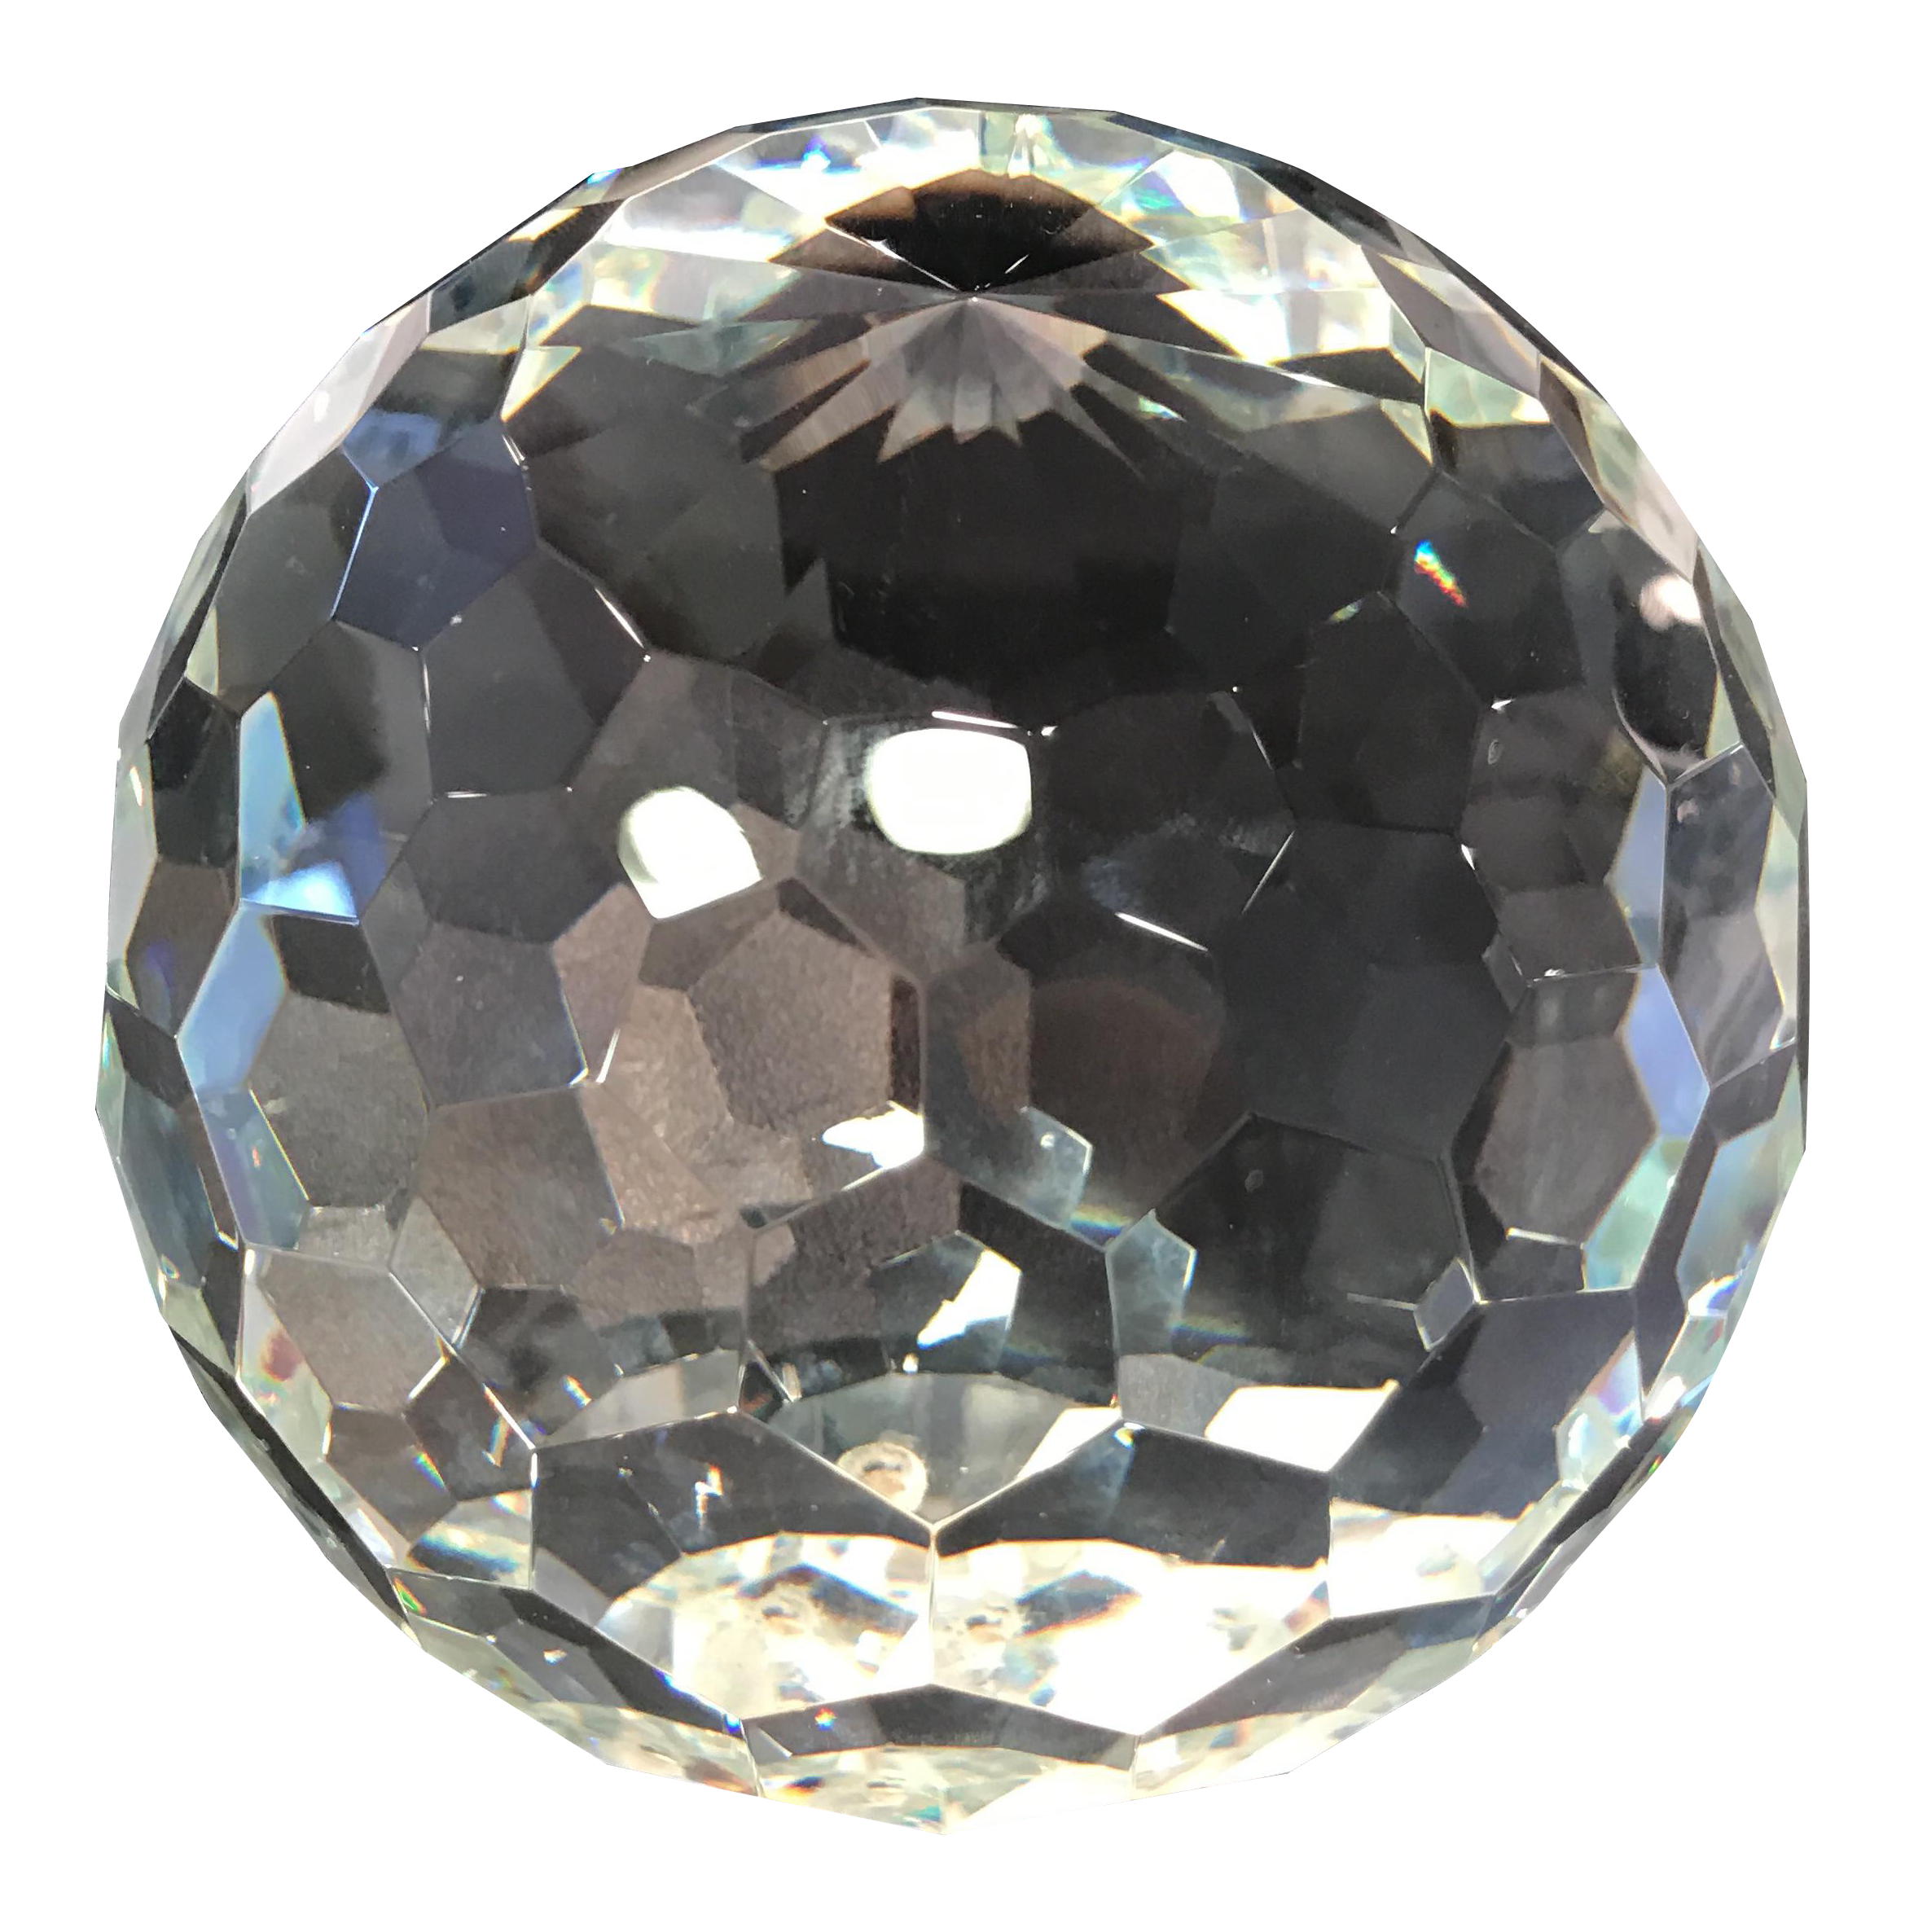 Cut Crystal Ball Paperweight Chairish